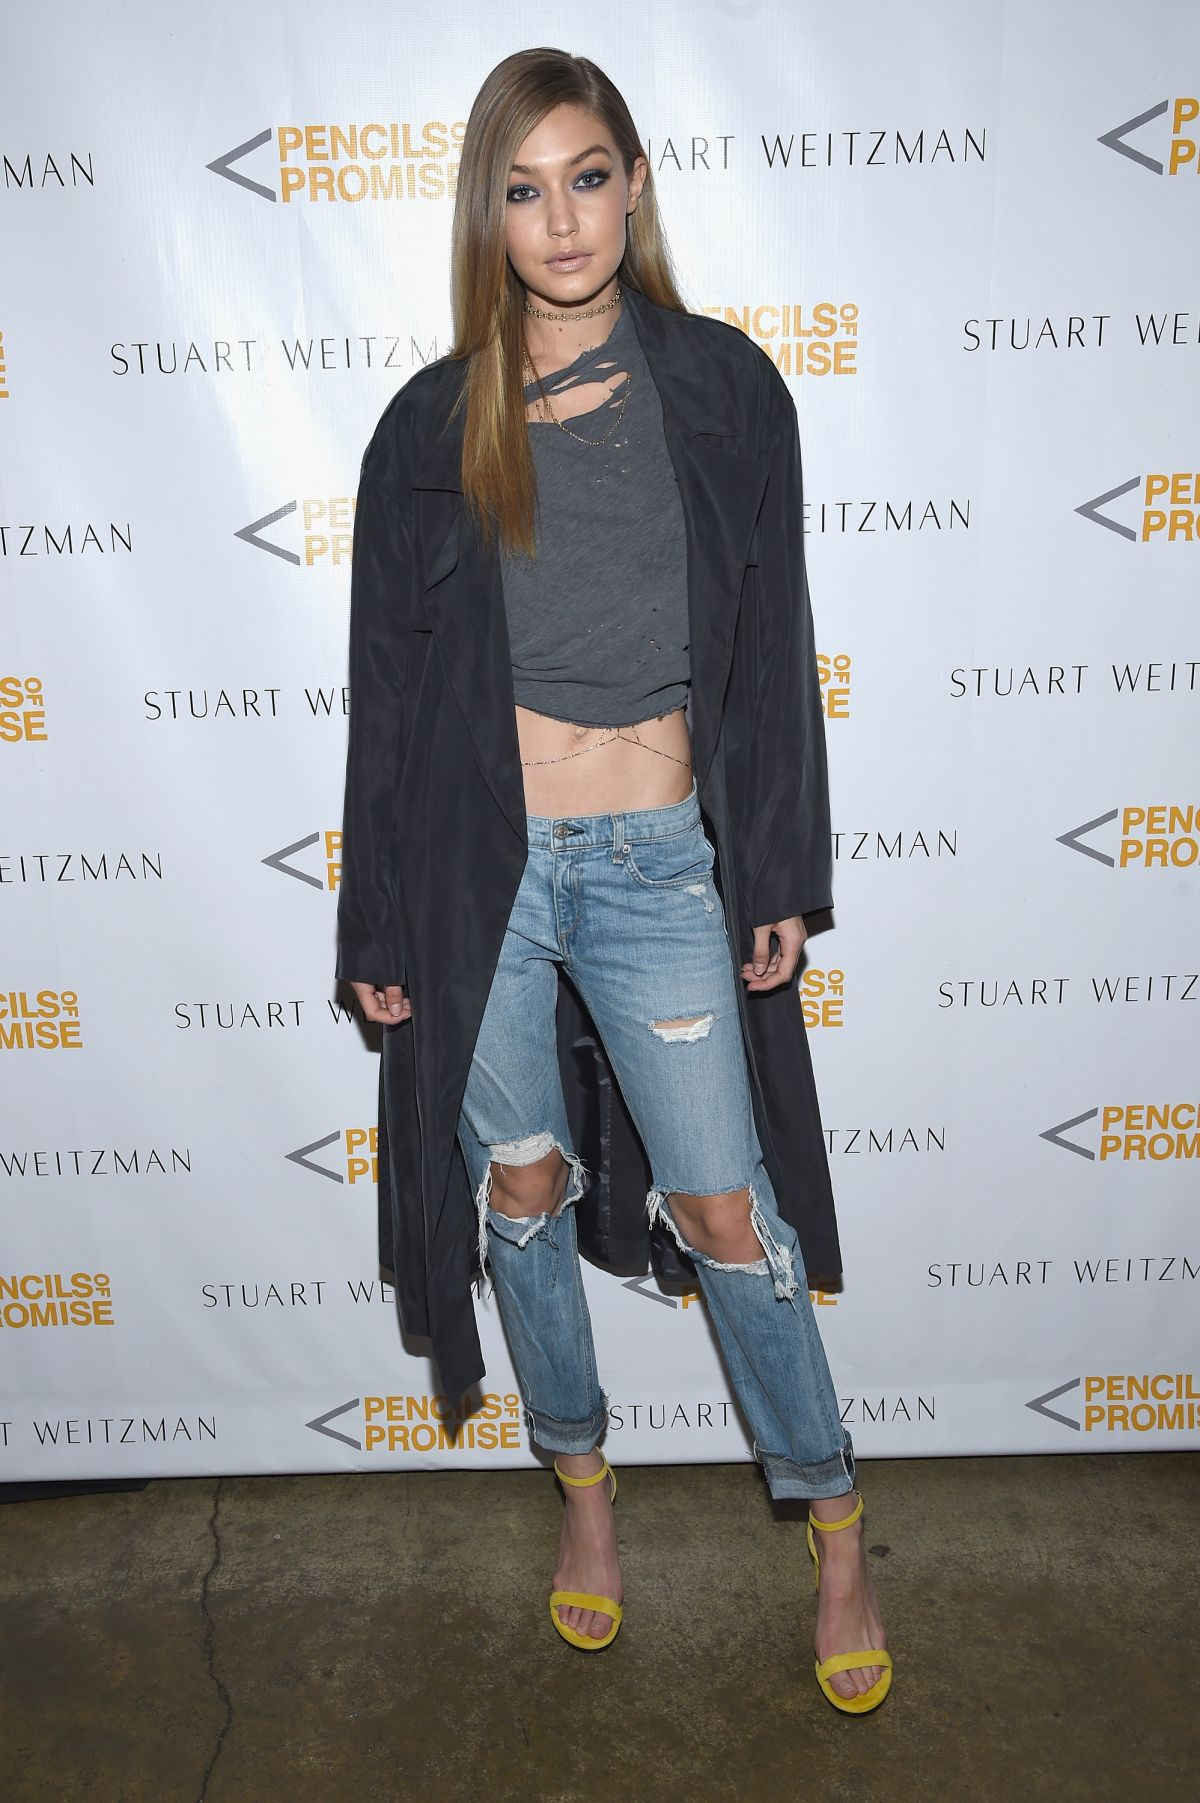 GIGI HADID at Stuart Weitzman Luncheon in New York 04/11/2016